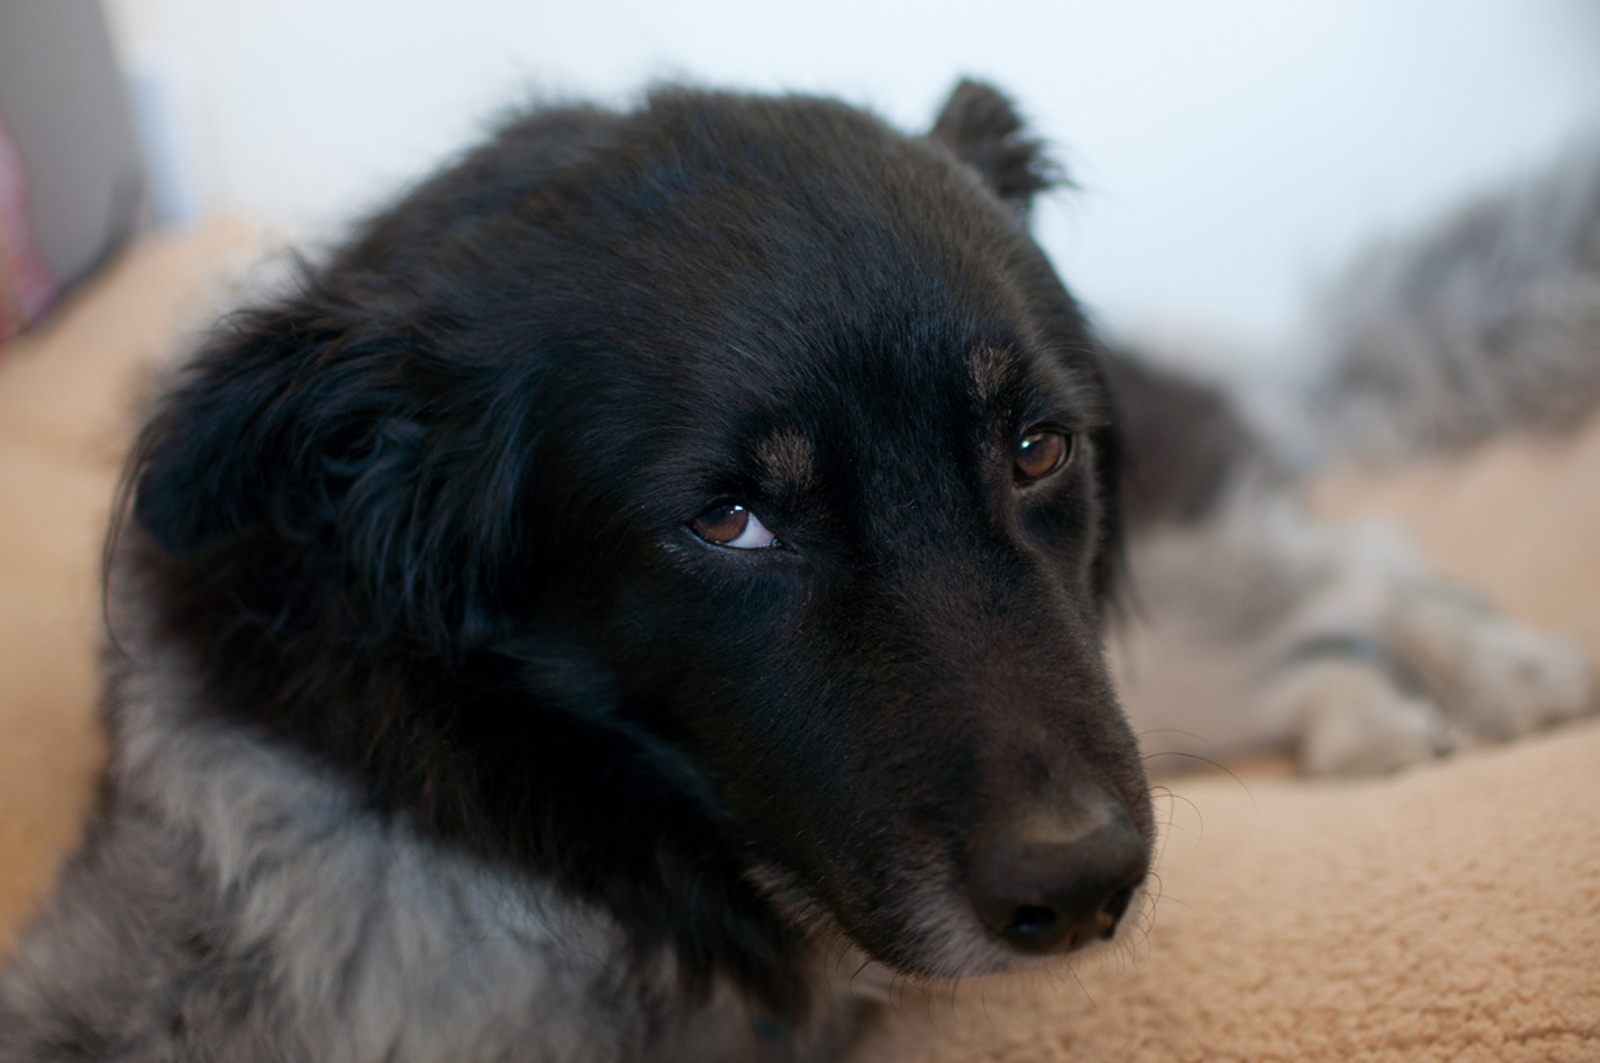 Is It a Quirk or the Symptom of Illness? 5 Commonly Misinterpreted Pet Behaviors